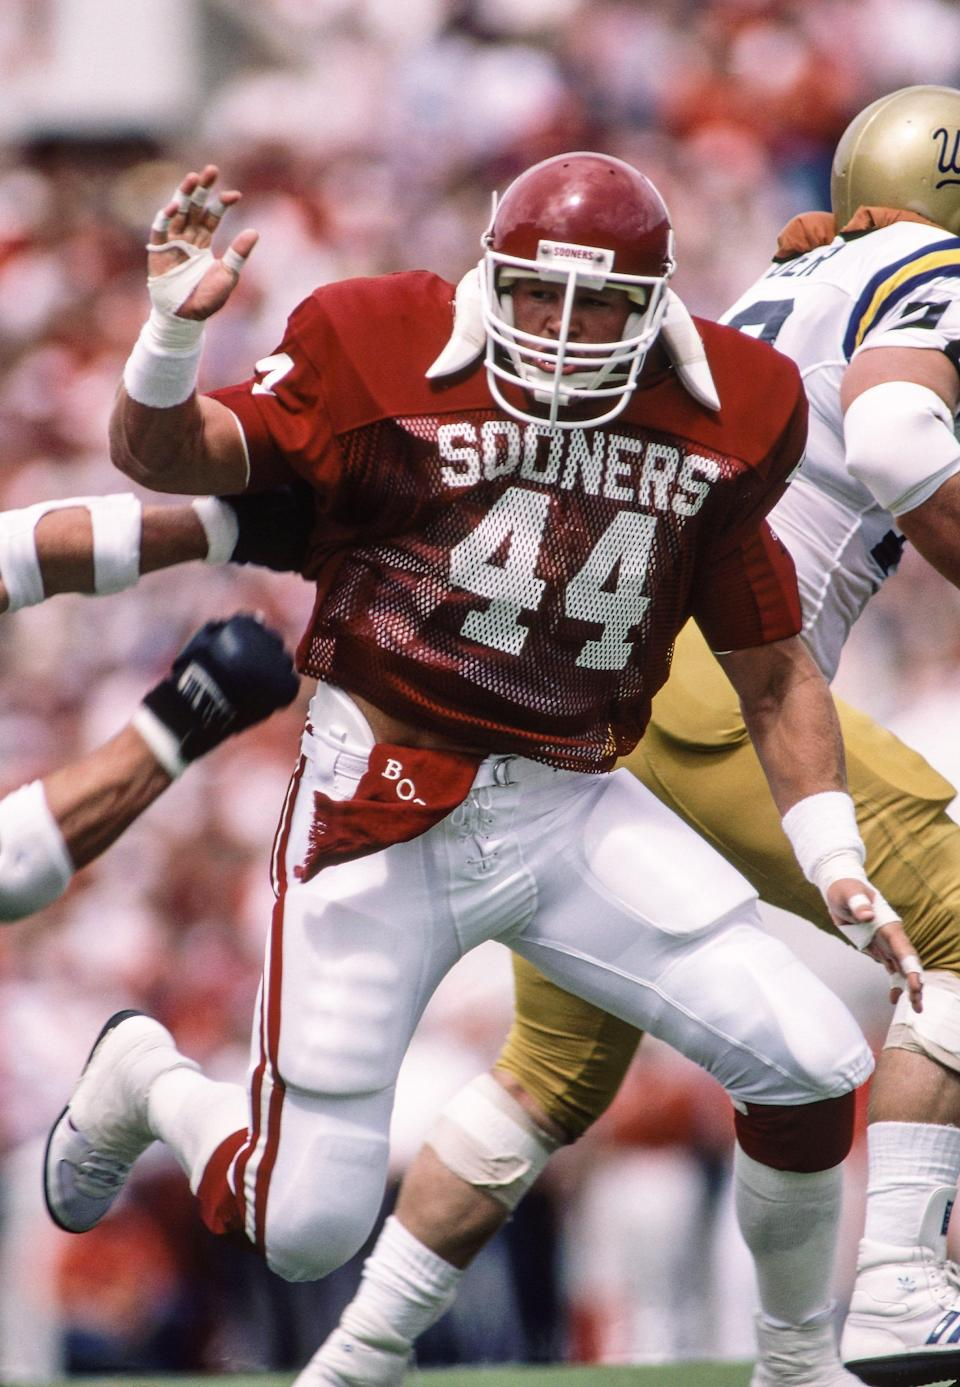 Brian Bosworth, who left Oklahoma in 1987, signed the largest rookie contract in NFL history at the time, with the Seattle Seahawks. He also inked commercial, book, clothing and shoe deals worth more than $1.1 million, according to contemporary reports.